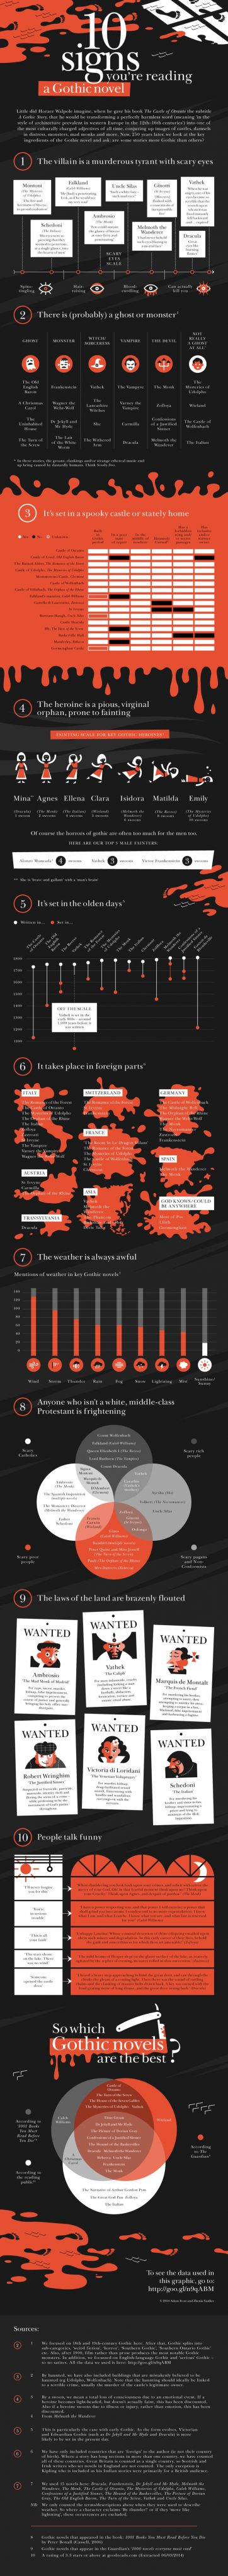 Infographic: Ten Signs You Are Reading a Gothic Novel Infographic